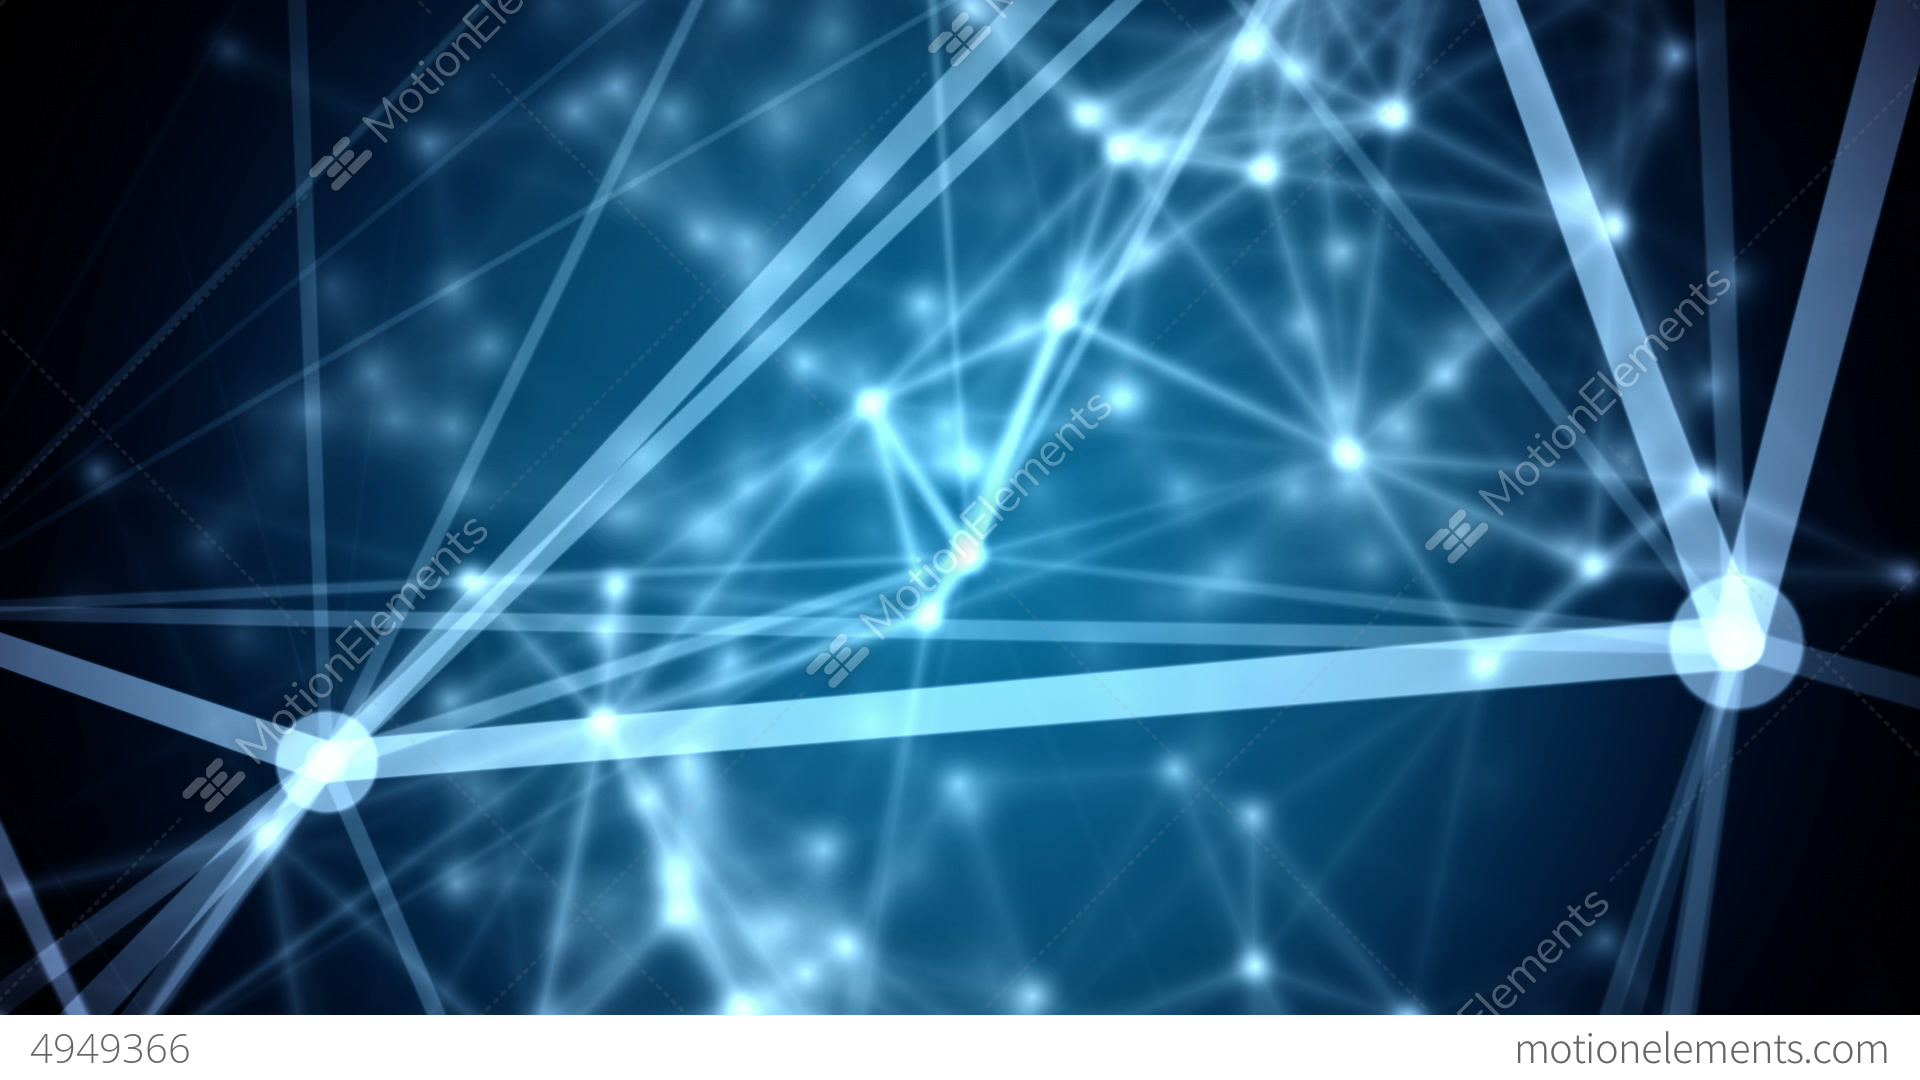 abstract network background - photo #2